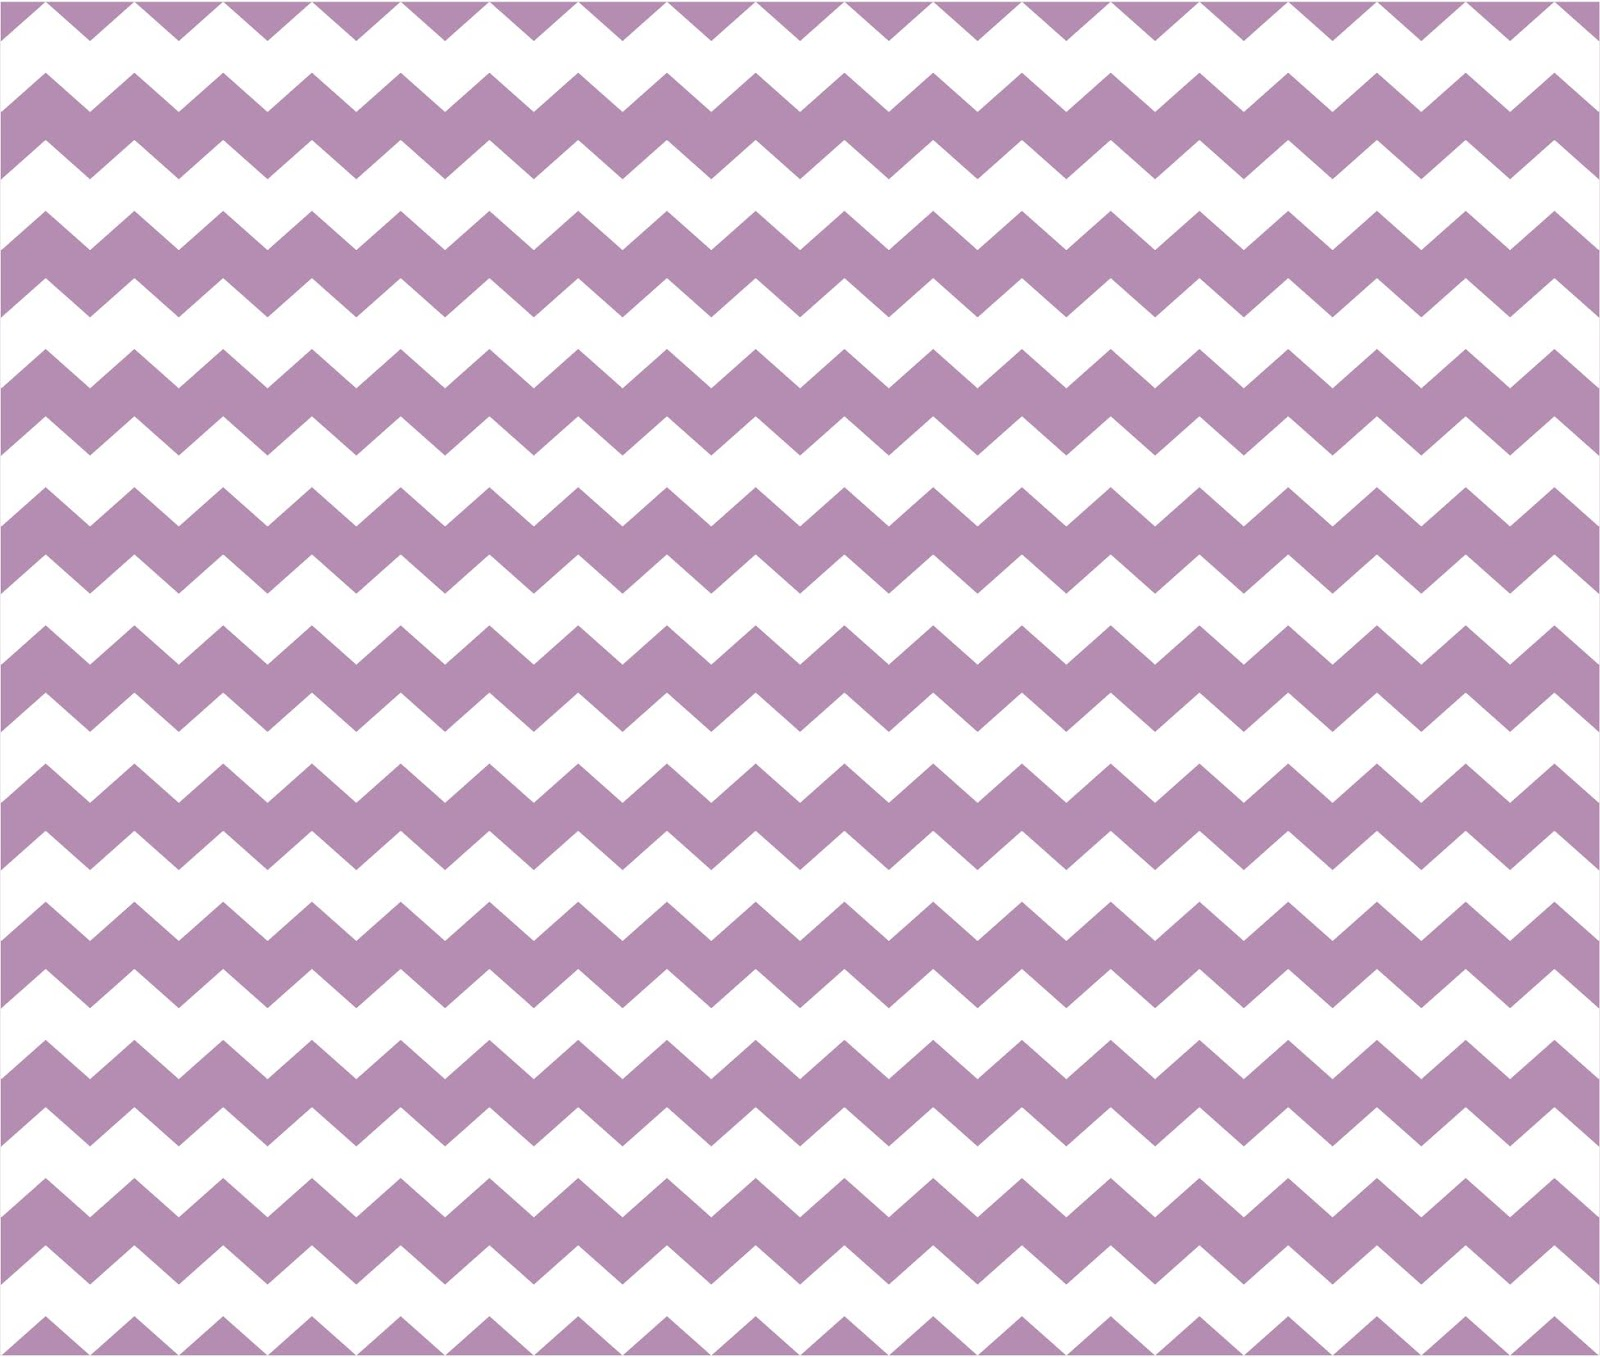 photo regarding Free Printable Chevron Pattern named 2 Magical Mothers: No cost Chevron Electronic Papers